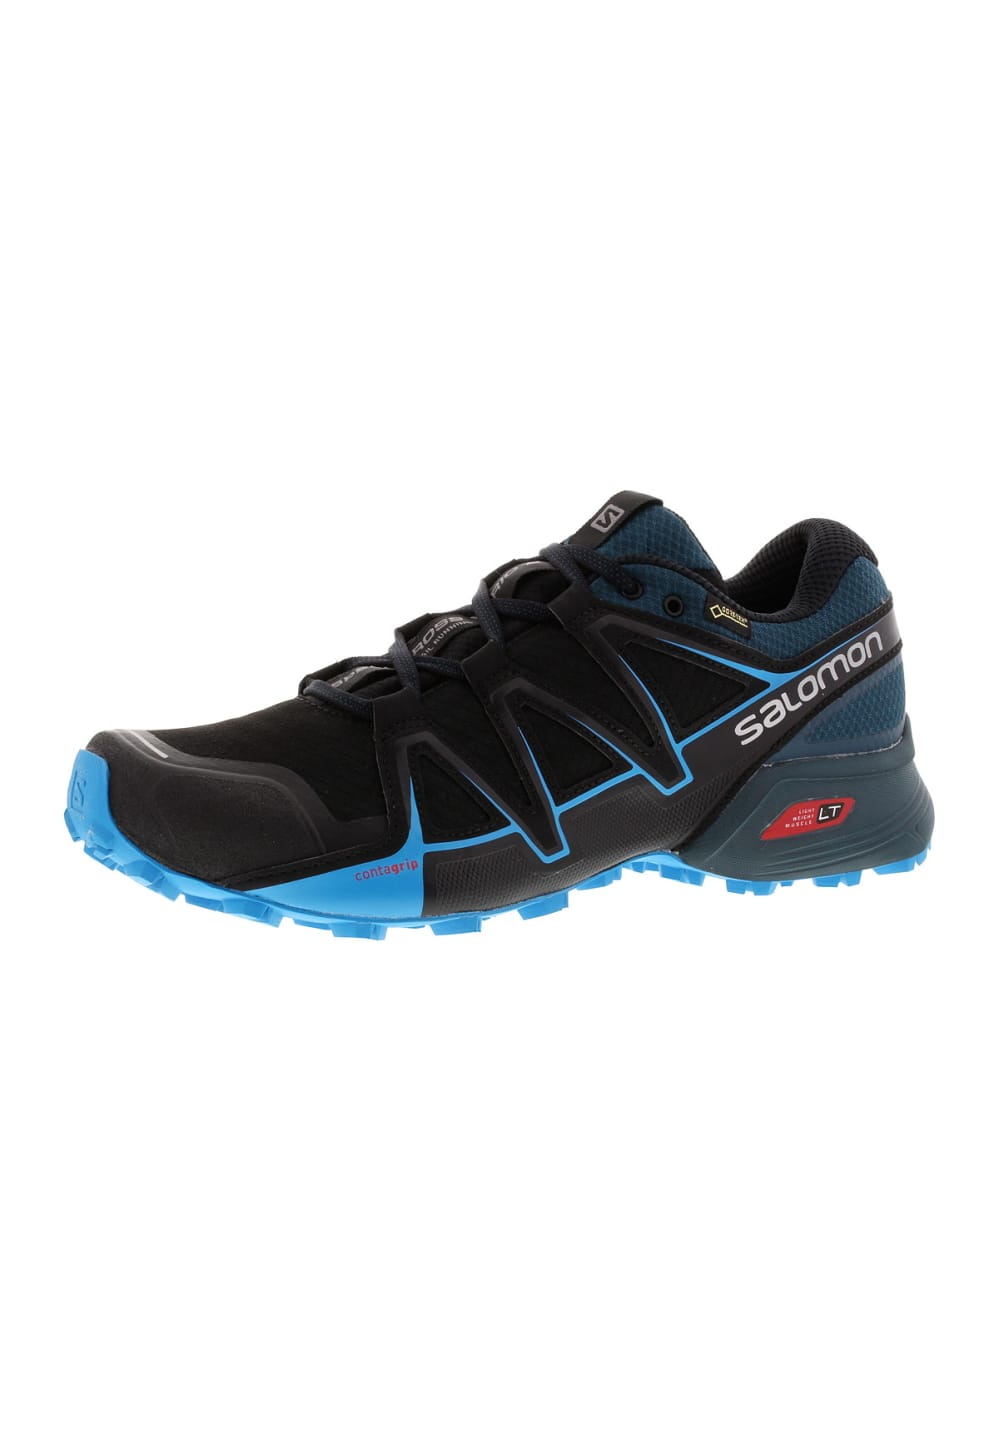 Salomon Speedcross Vario 2 Men's Trail Running Shoes